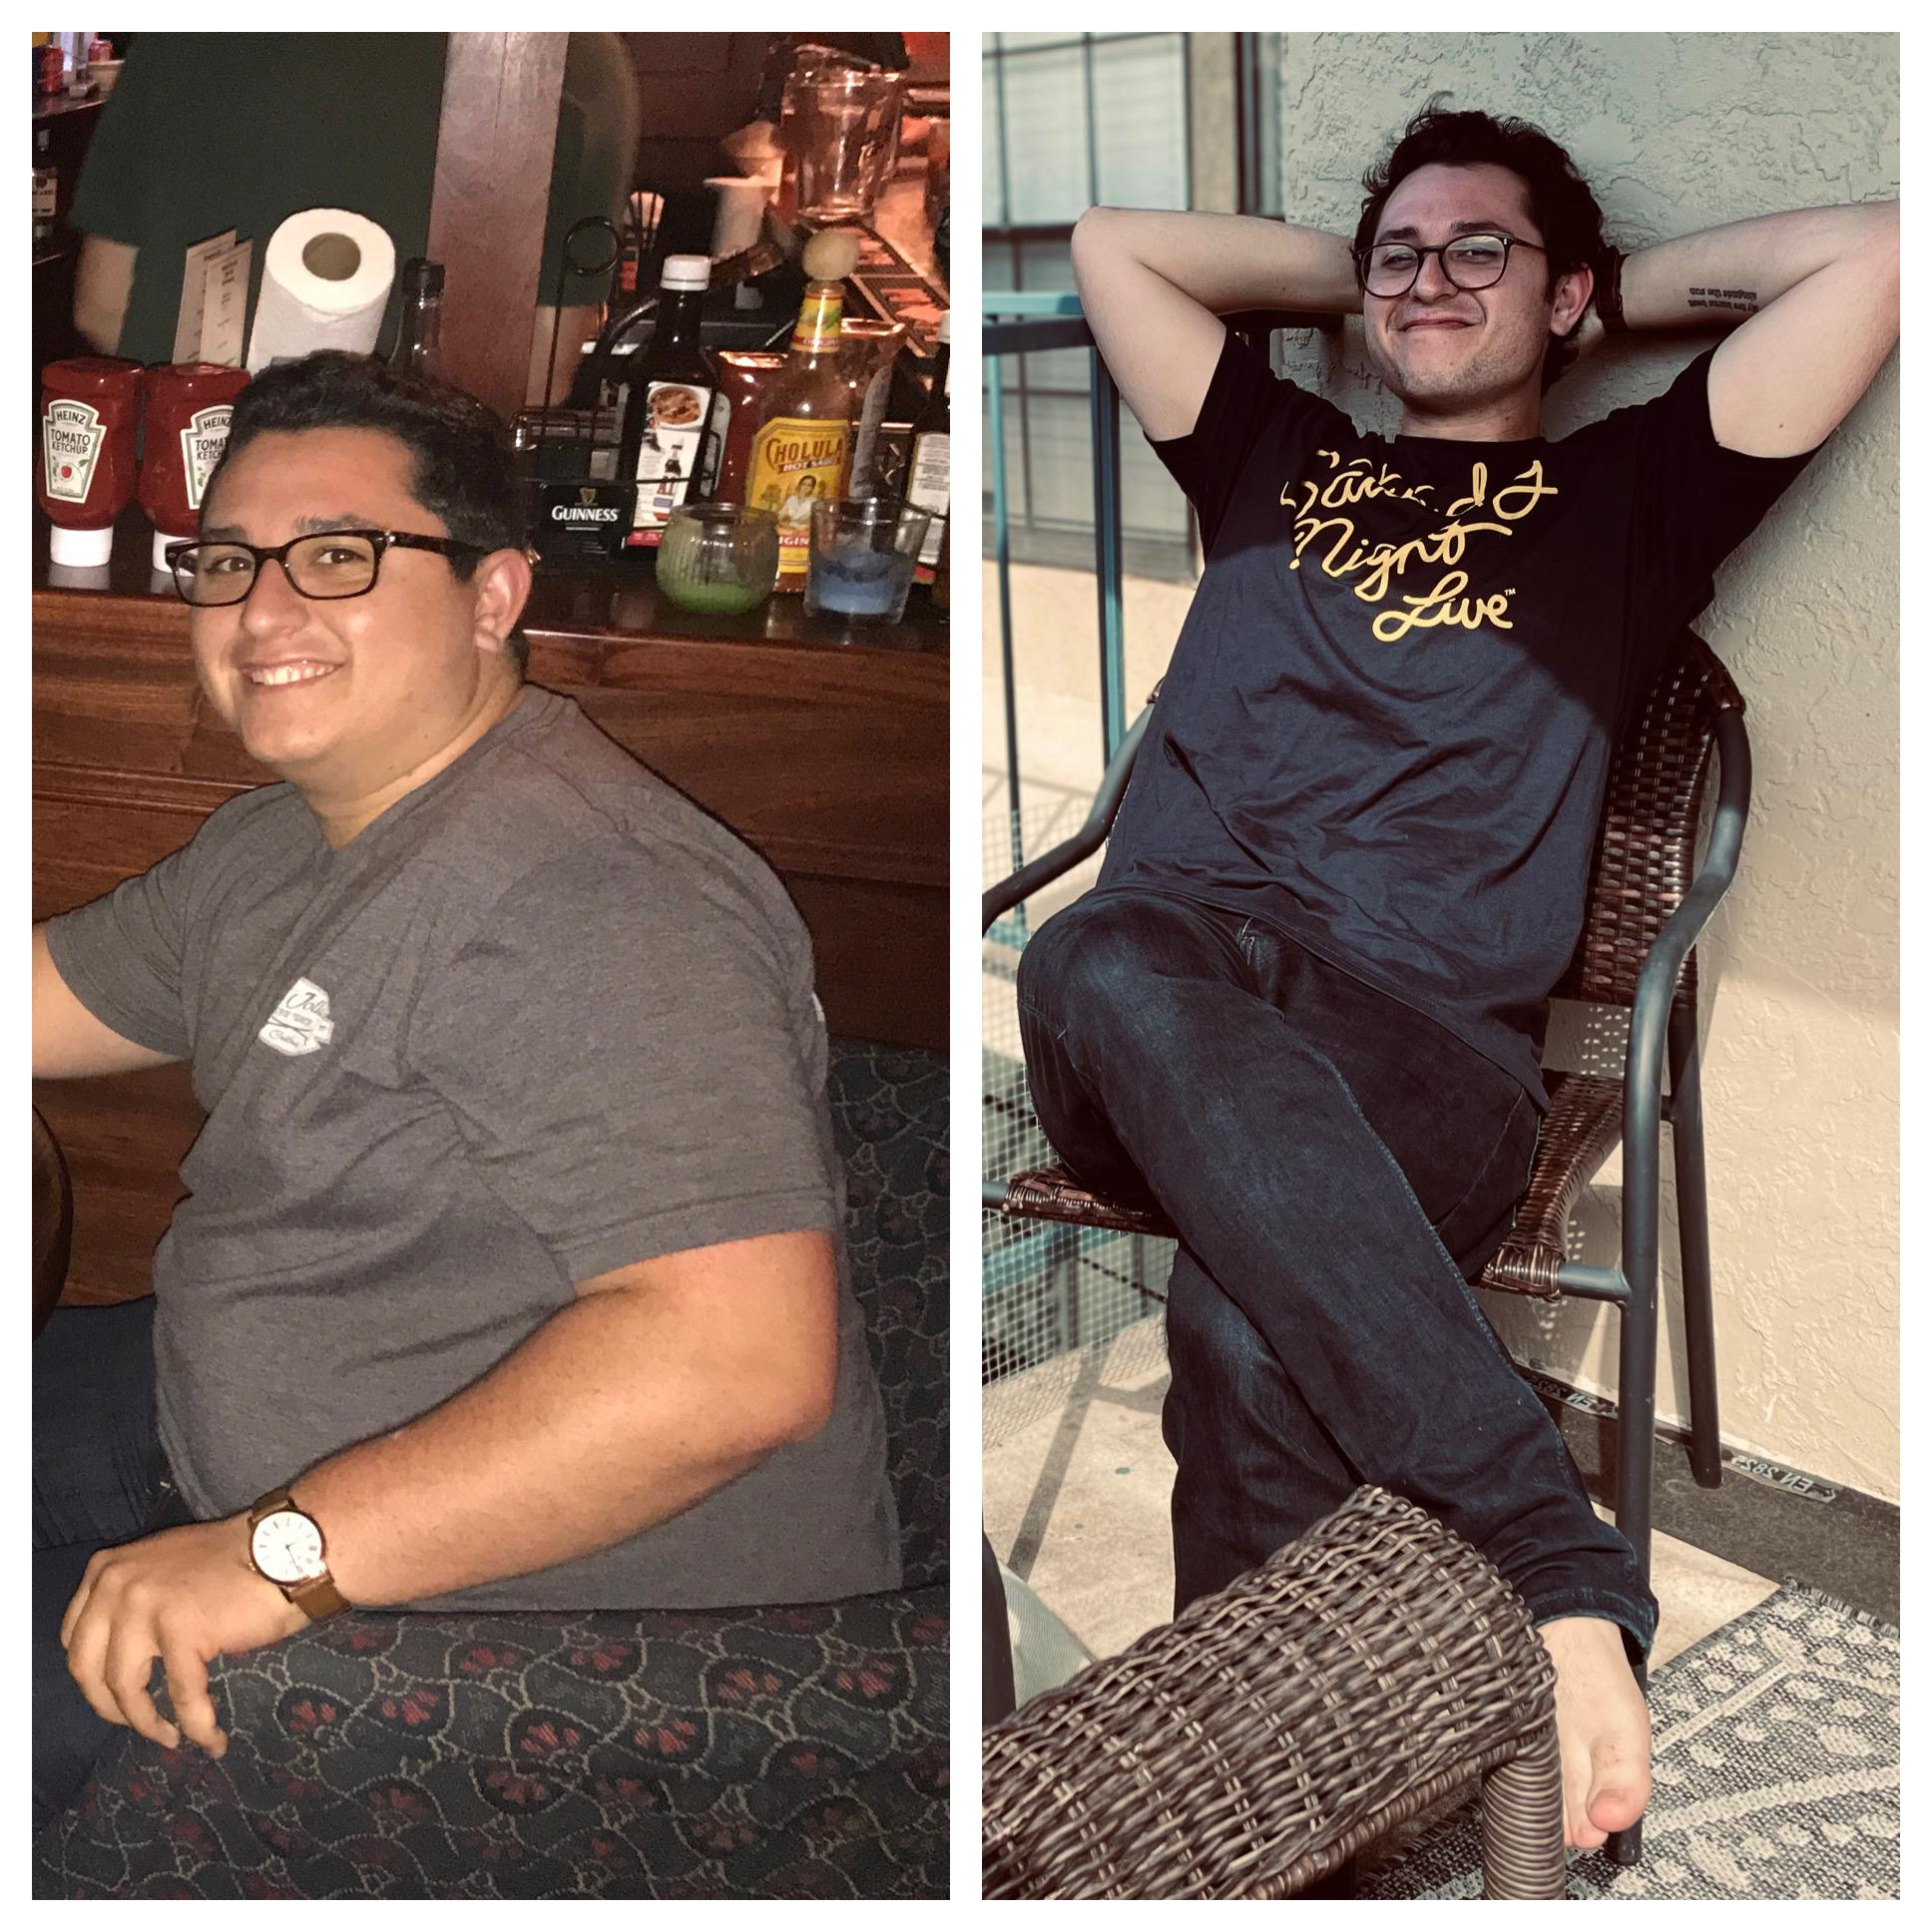 5 foot 7 Male Before and After 95 lbs Fat Loss 275 lbs to 180 lbs